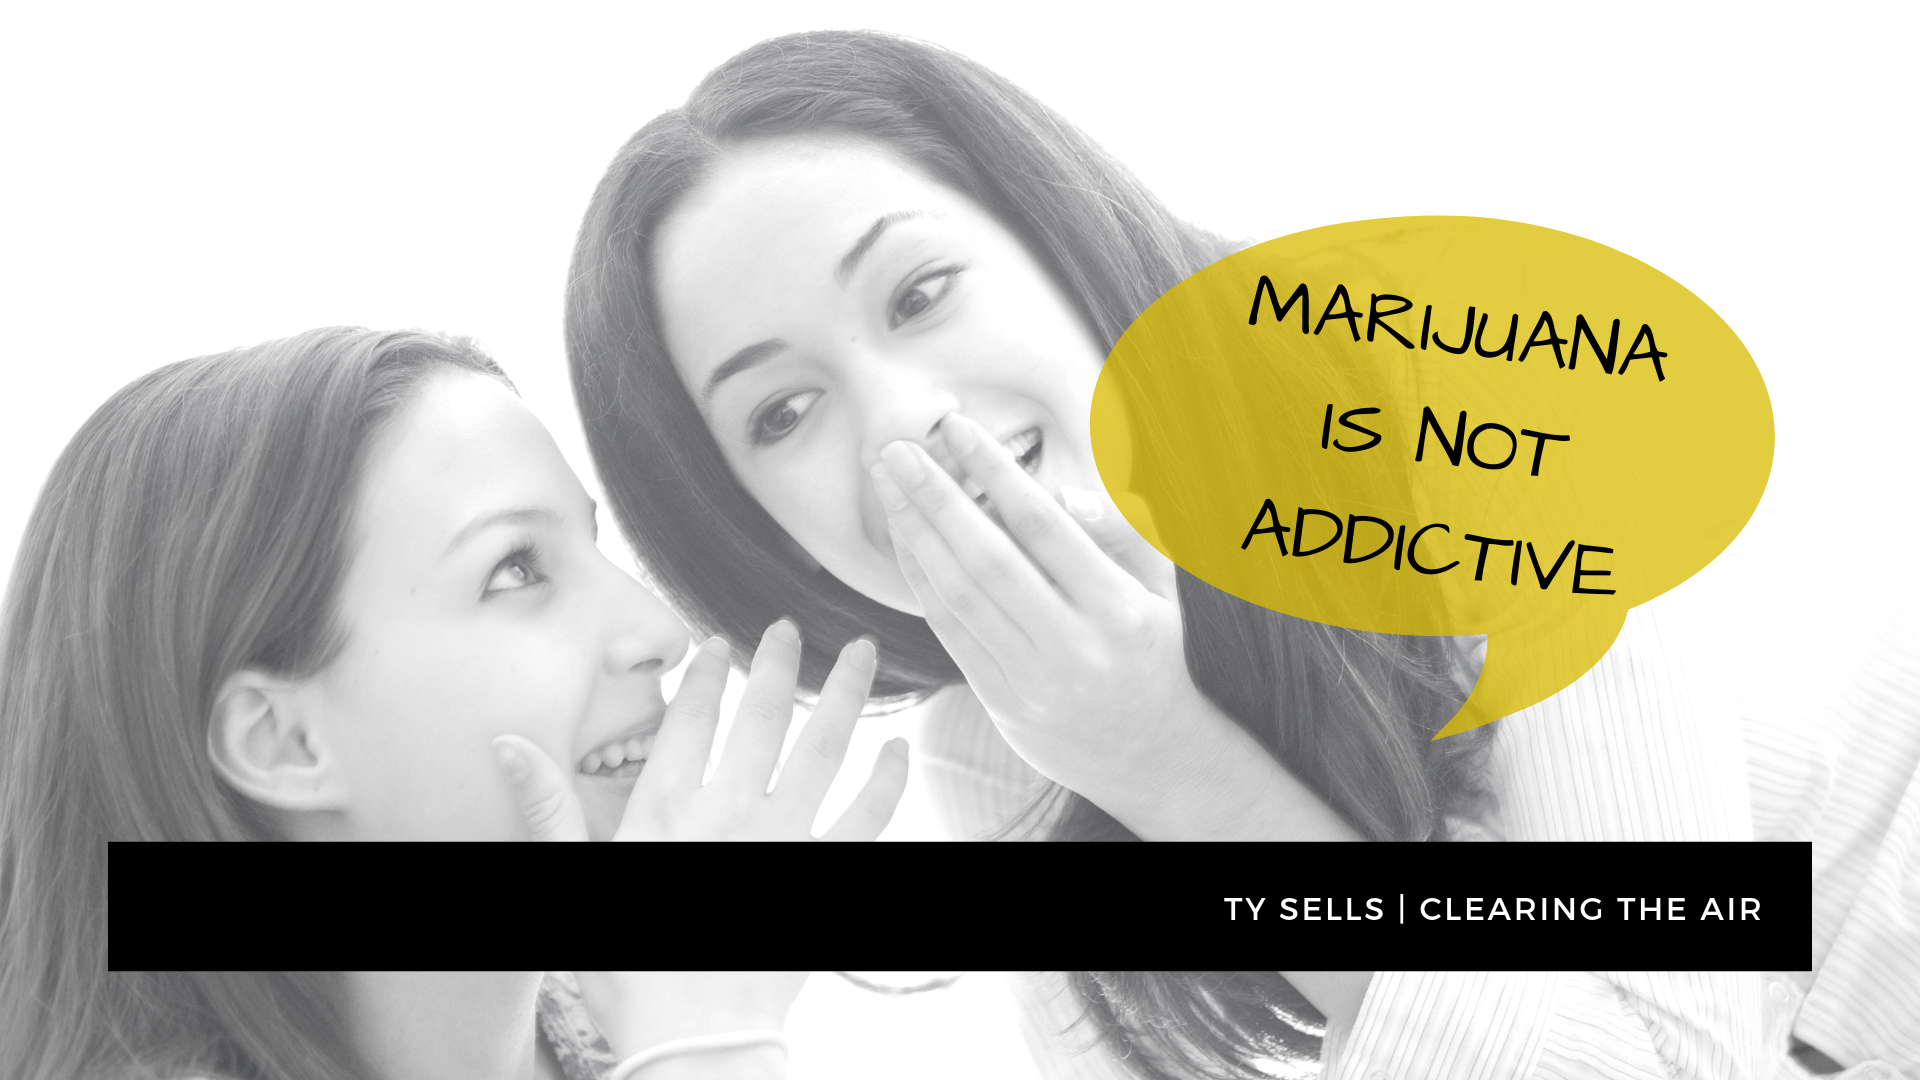 Myth #3: Marijuana is Not Addictive